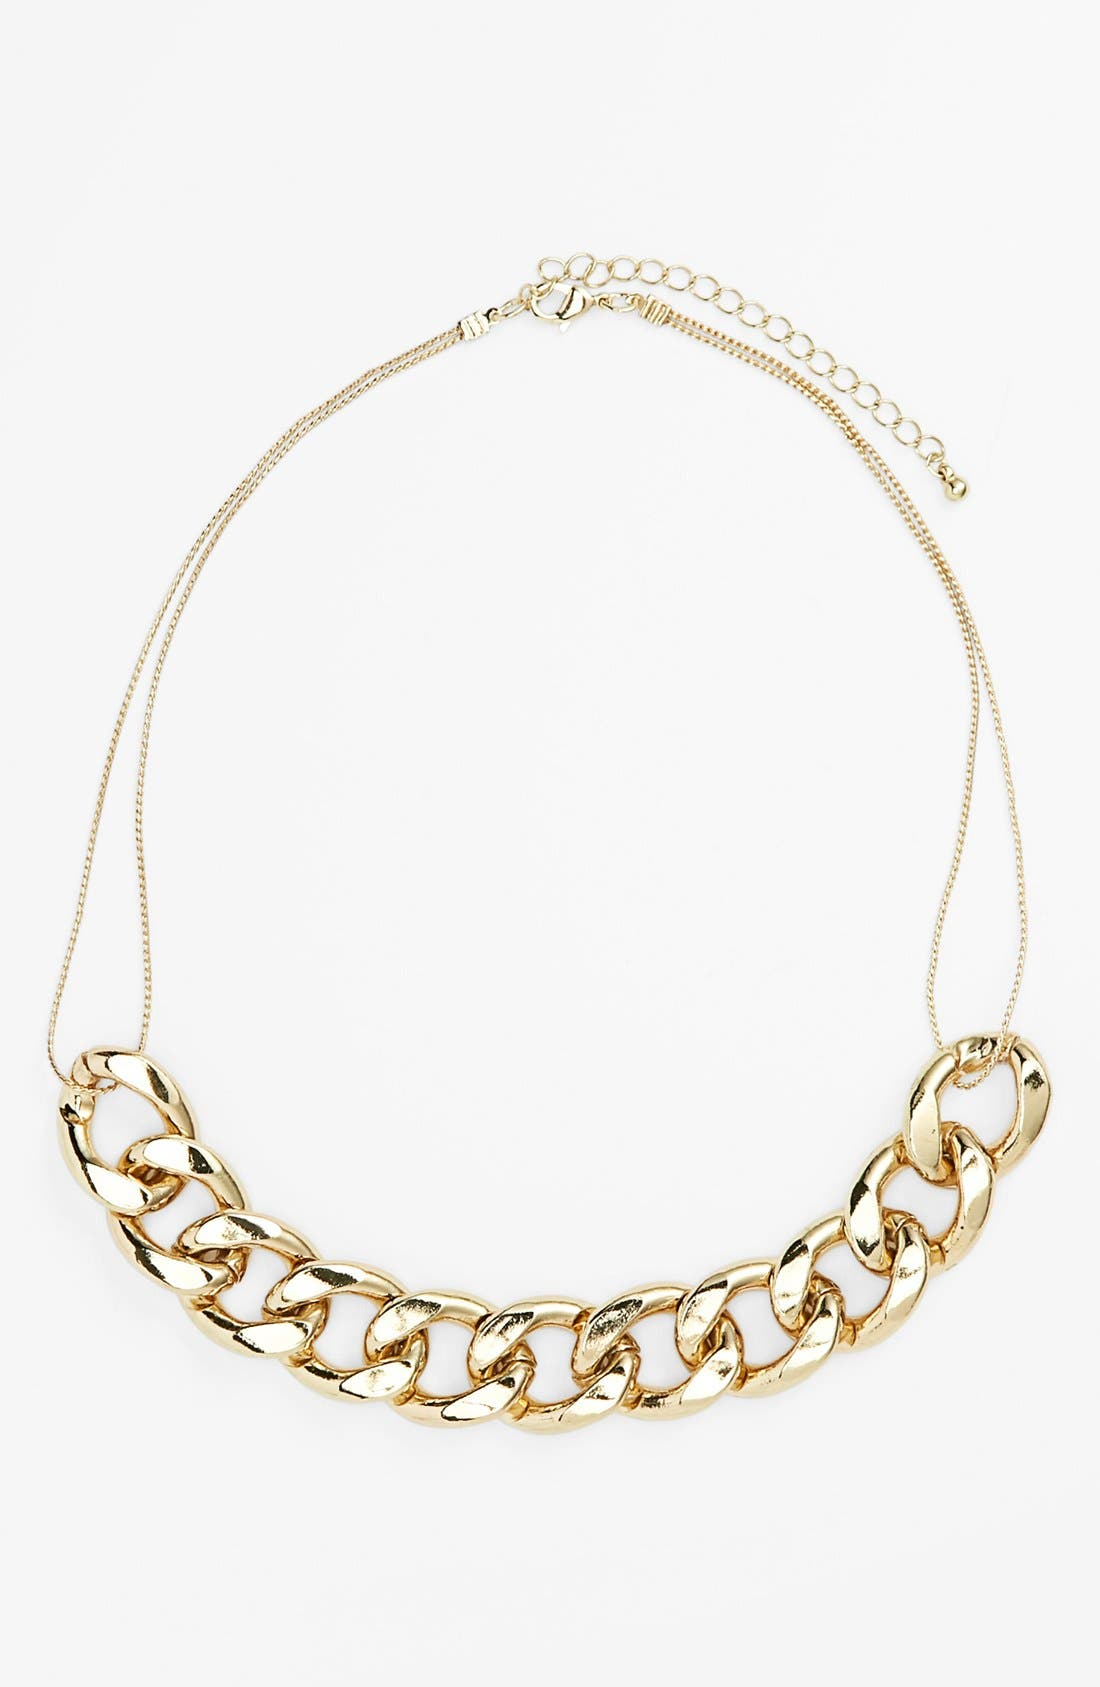 Alternate Image 1 Selected - Stephan & Co. Mixed Chain Necklace (Juniors) (Online Only)